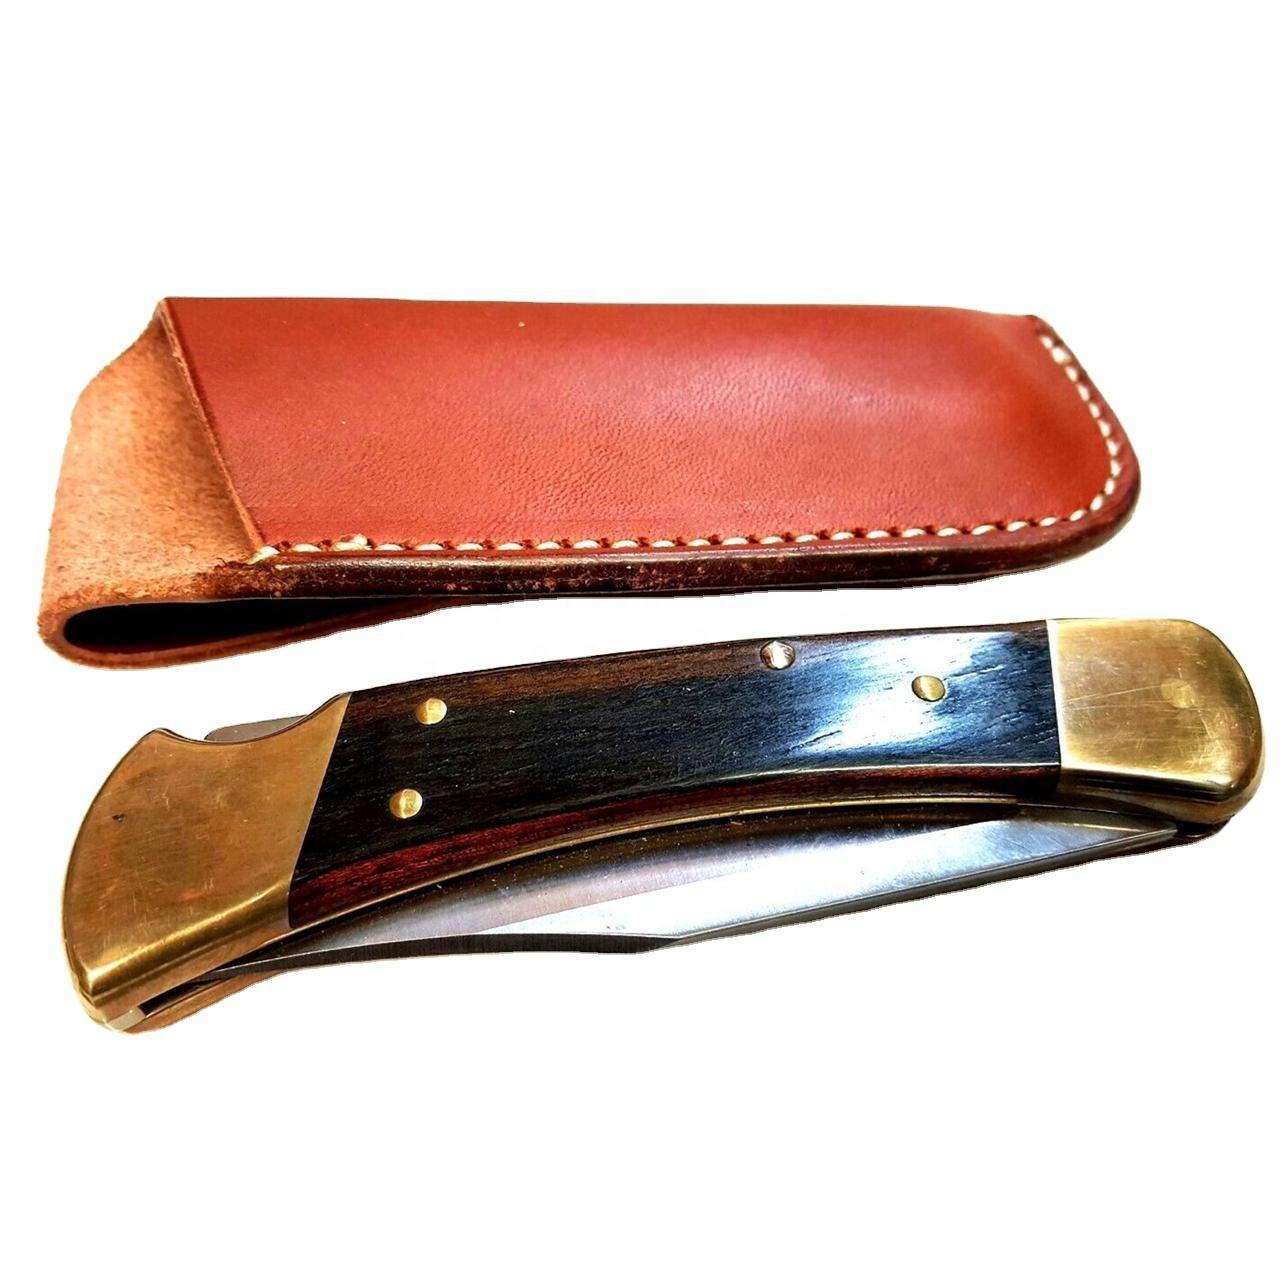 Tanned Harness Leather Pocket Knife Sheath For Buck 110 Folding Knife